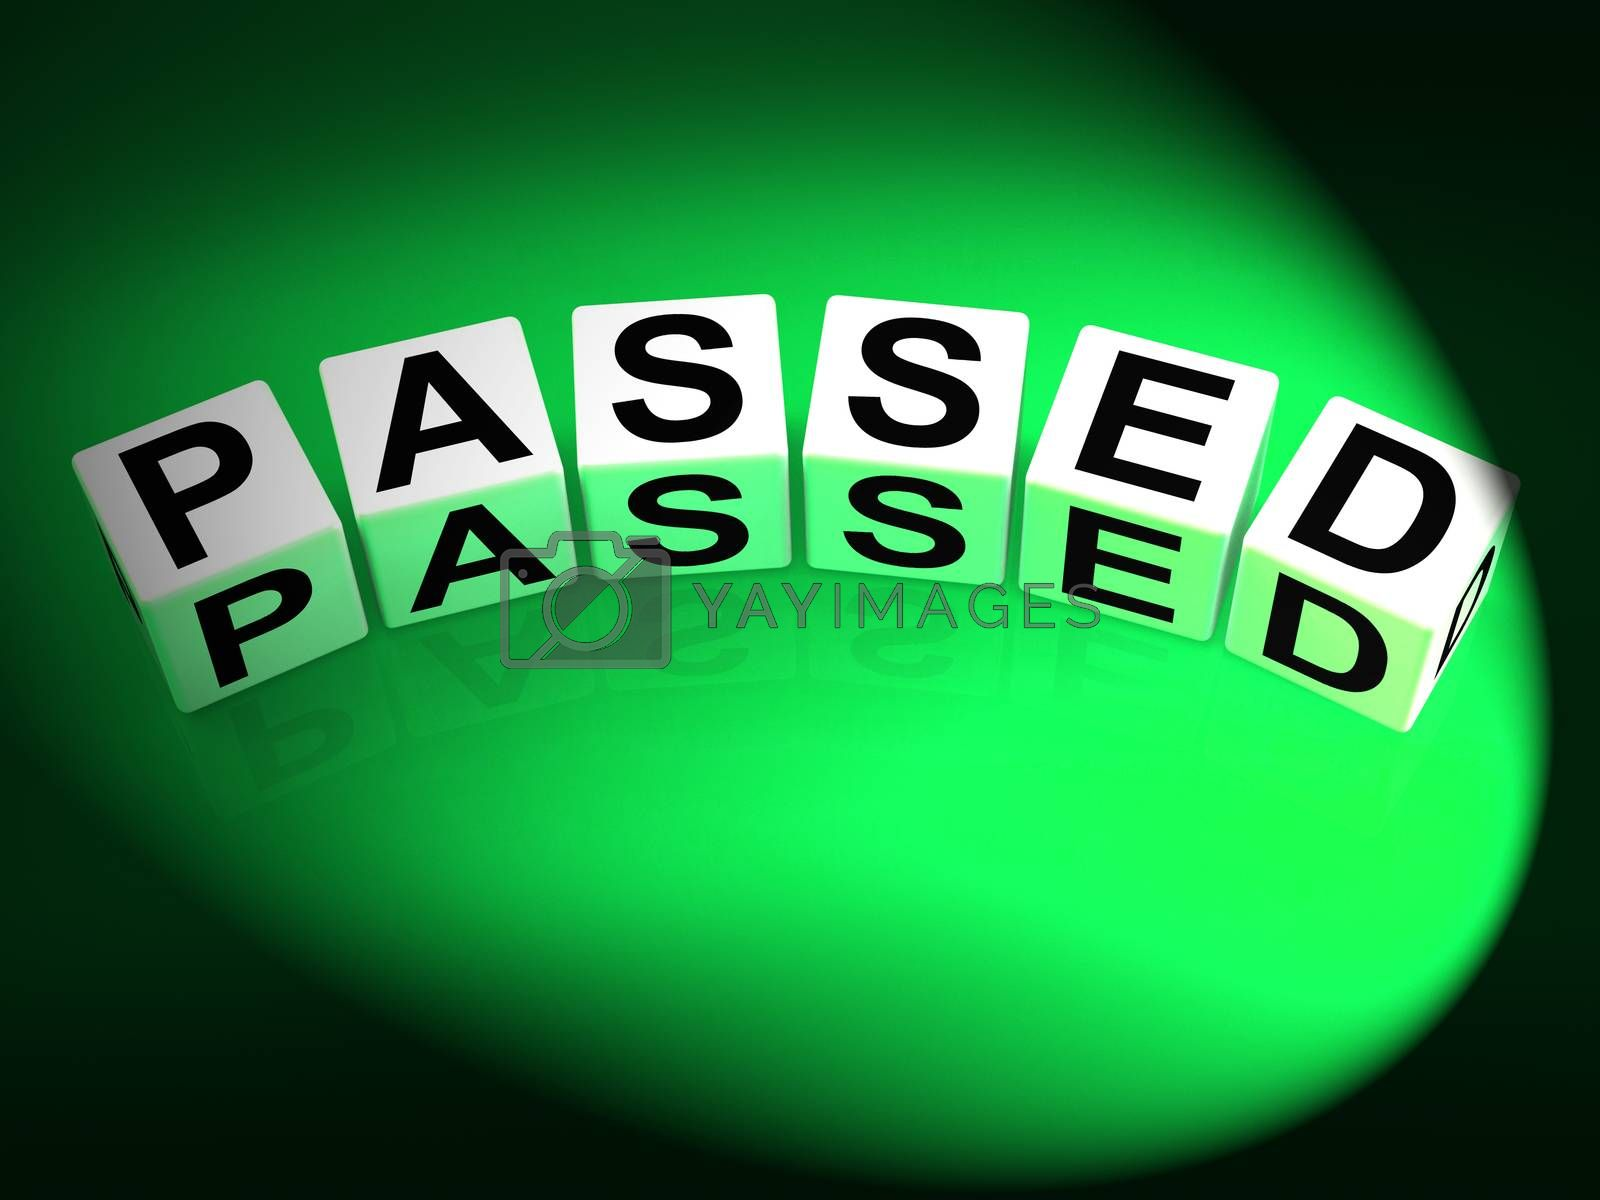 Passed Dice Refer to Satisfied Verified and Excellent Assurance by stuartmiles